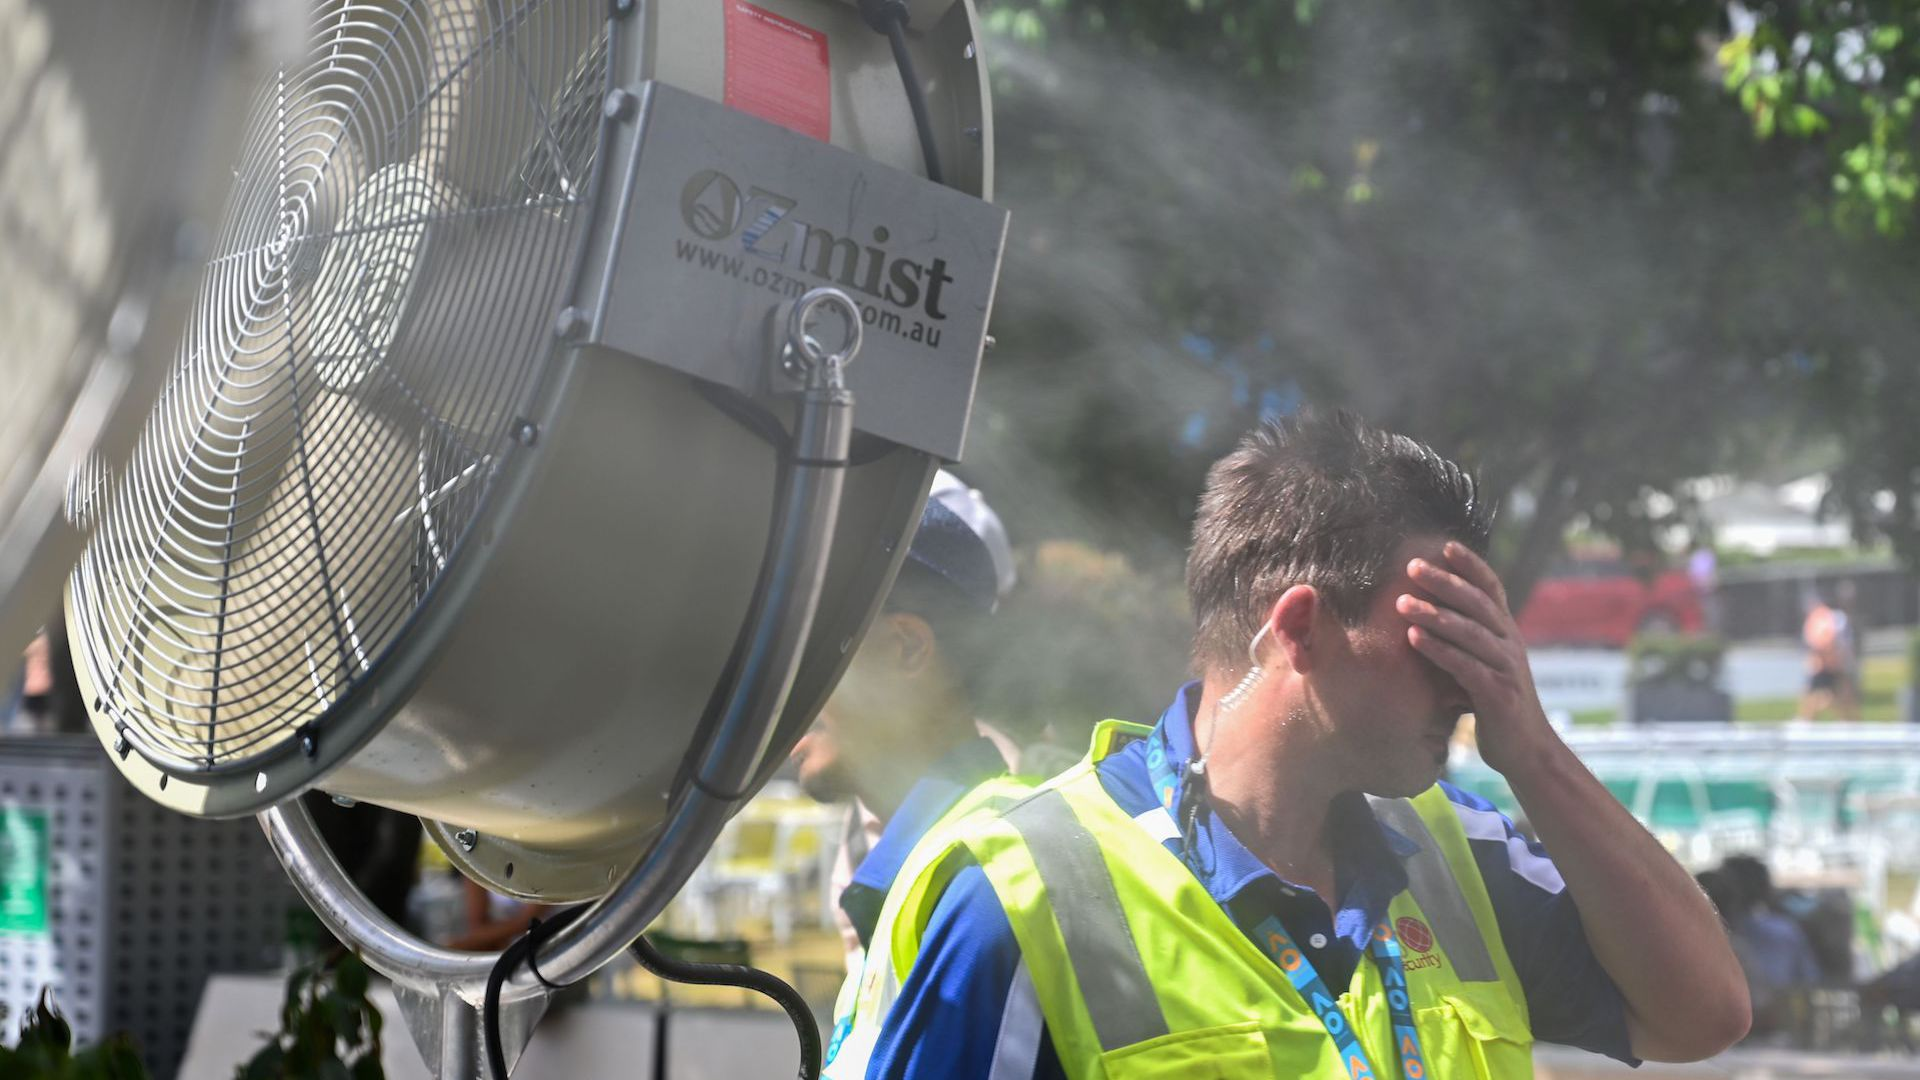 A man cools down in front of a mist fan for relief from the hot weather in Melbourne, Australia.